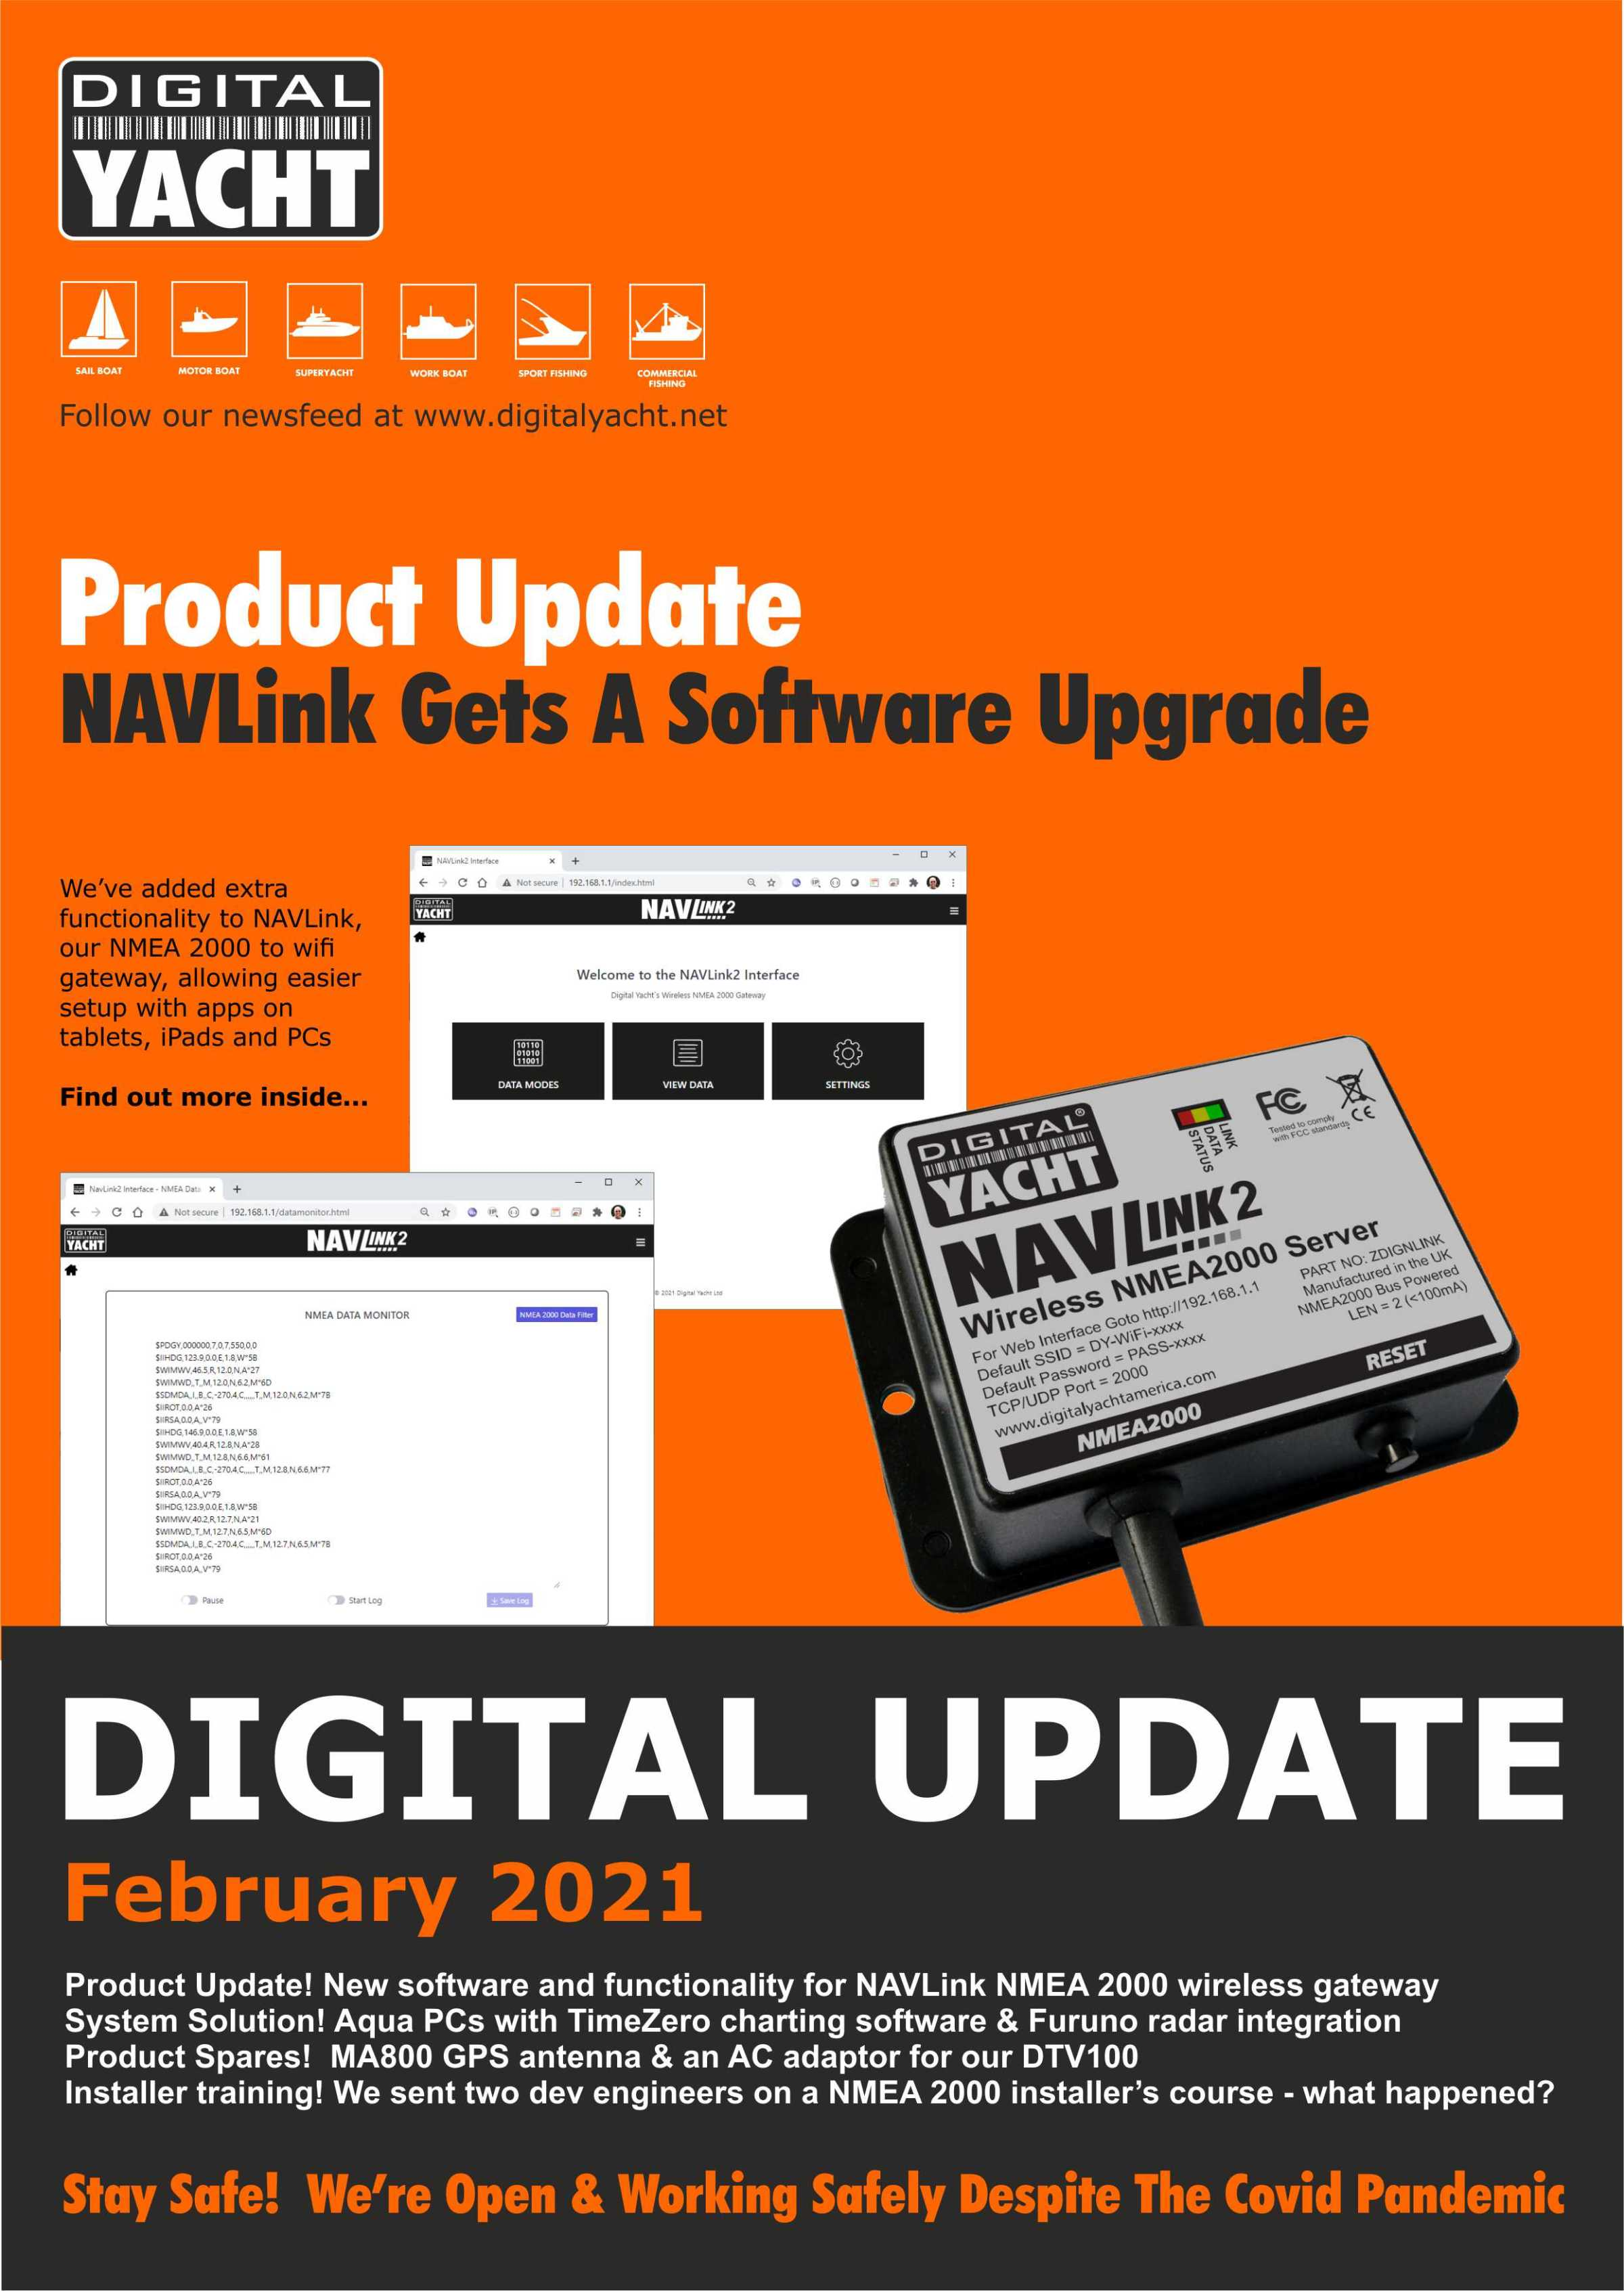 Digital Update February 2021 Now Available for Download